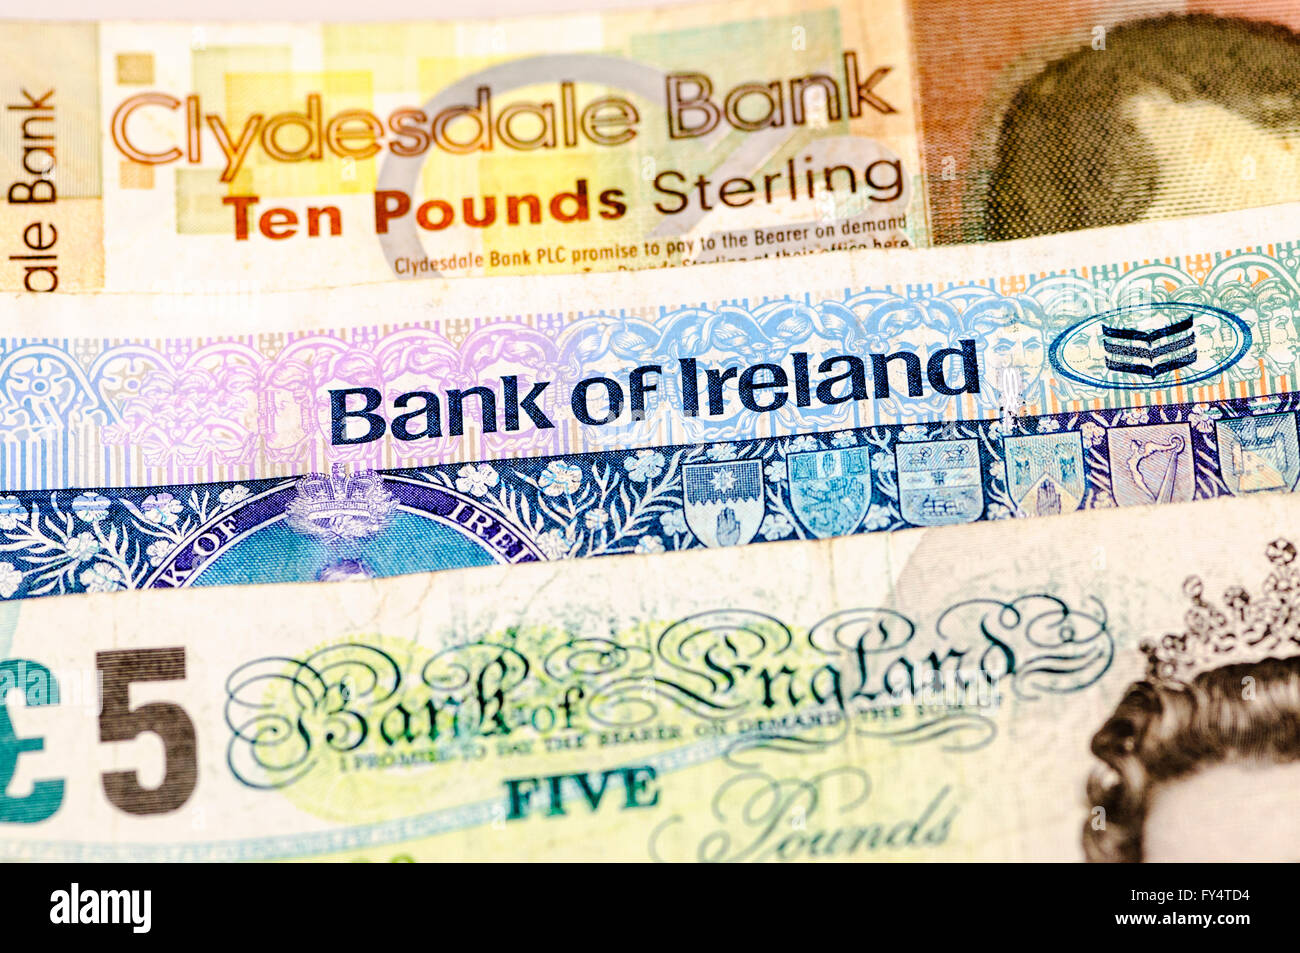 Banknotes from the Clydesdale Bank in Scotland, Bank of Ireland in Northern Ireland and the Bank of England, all Stock Photo